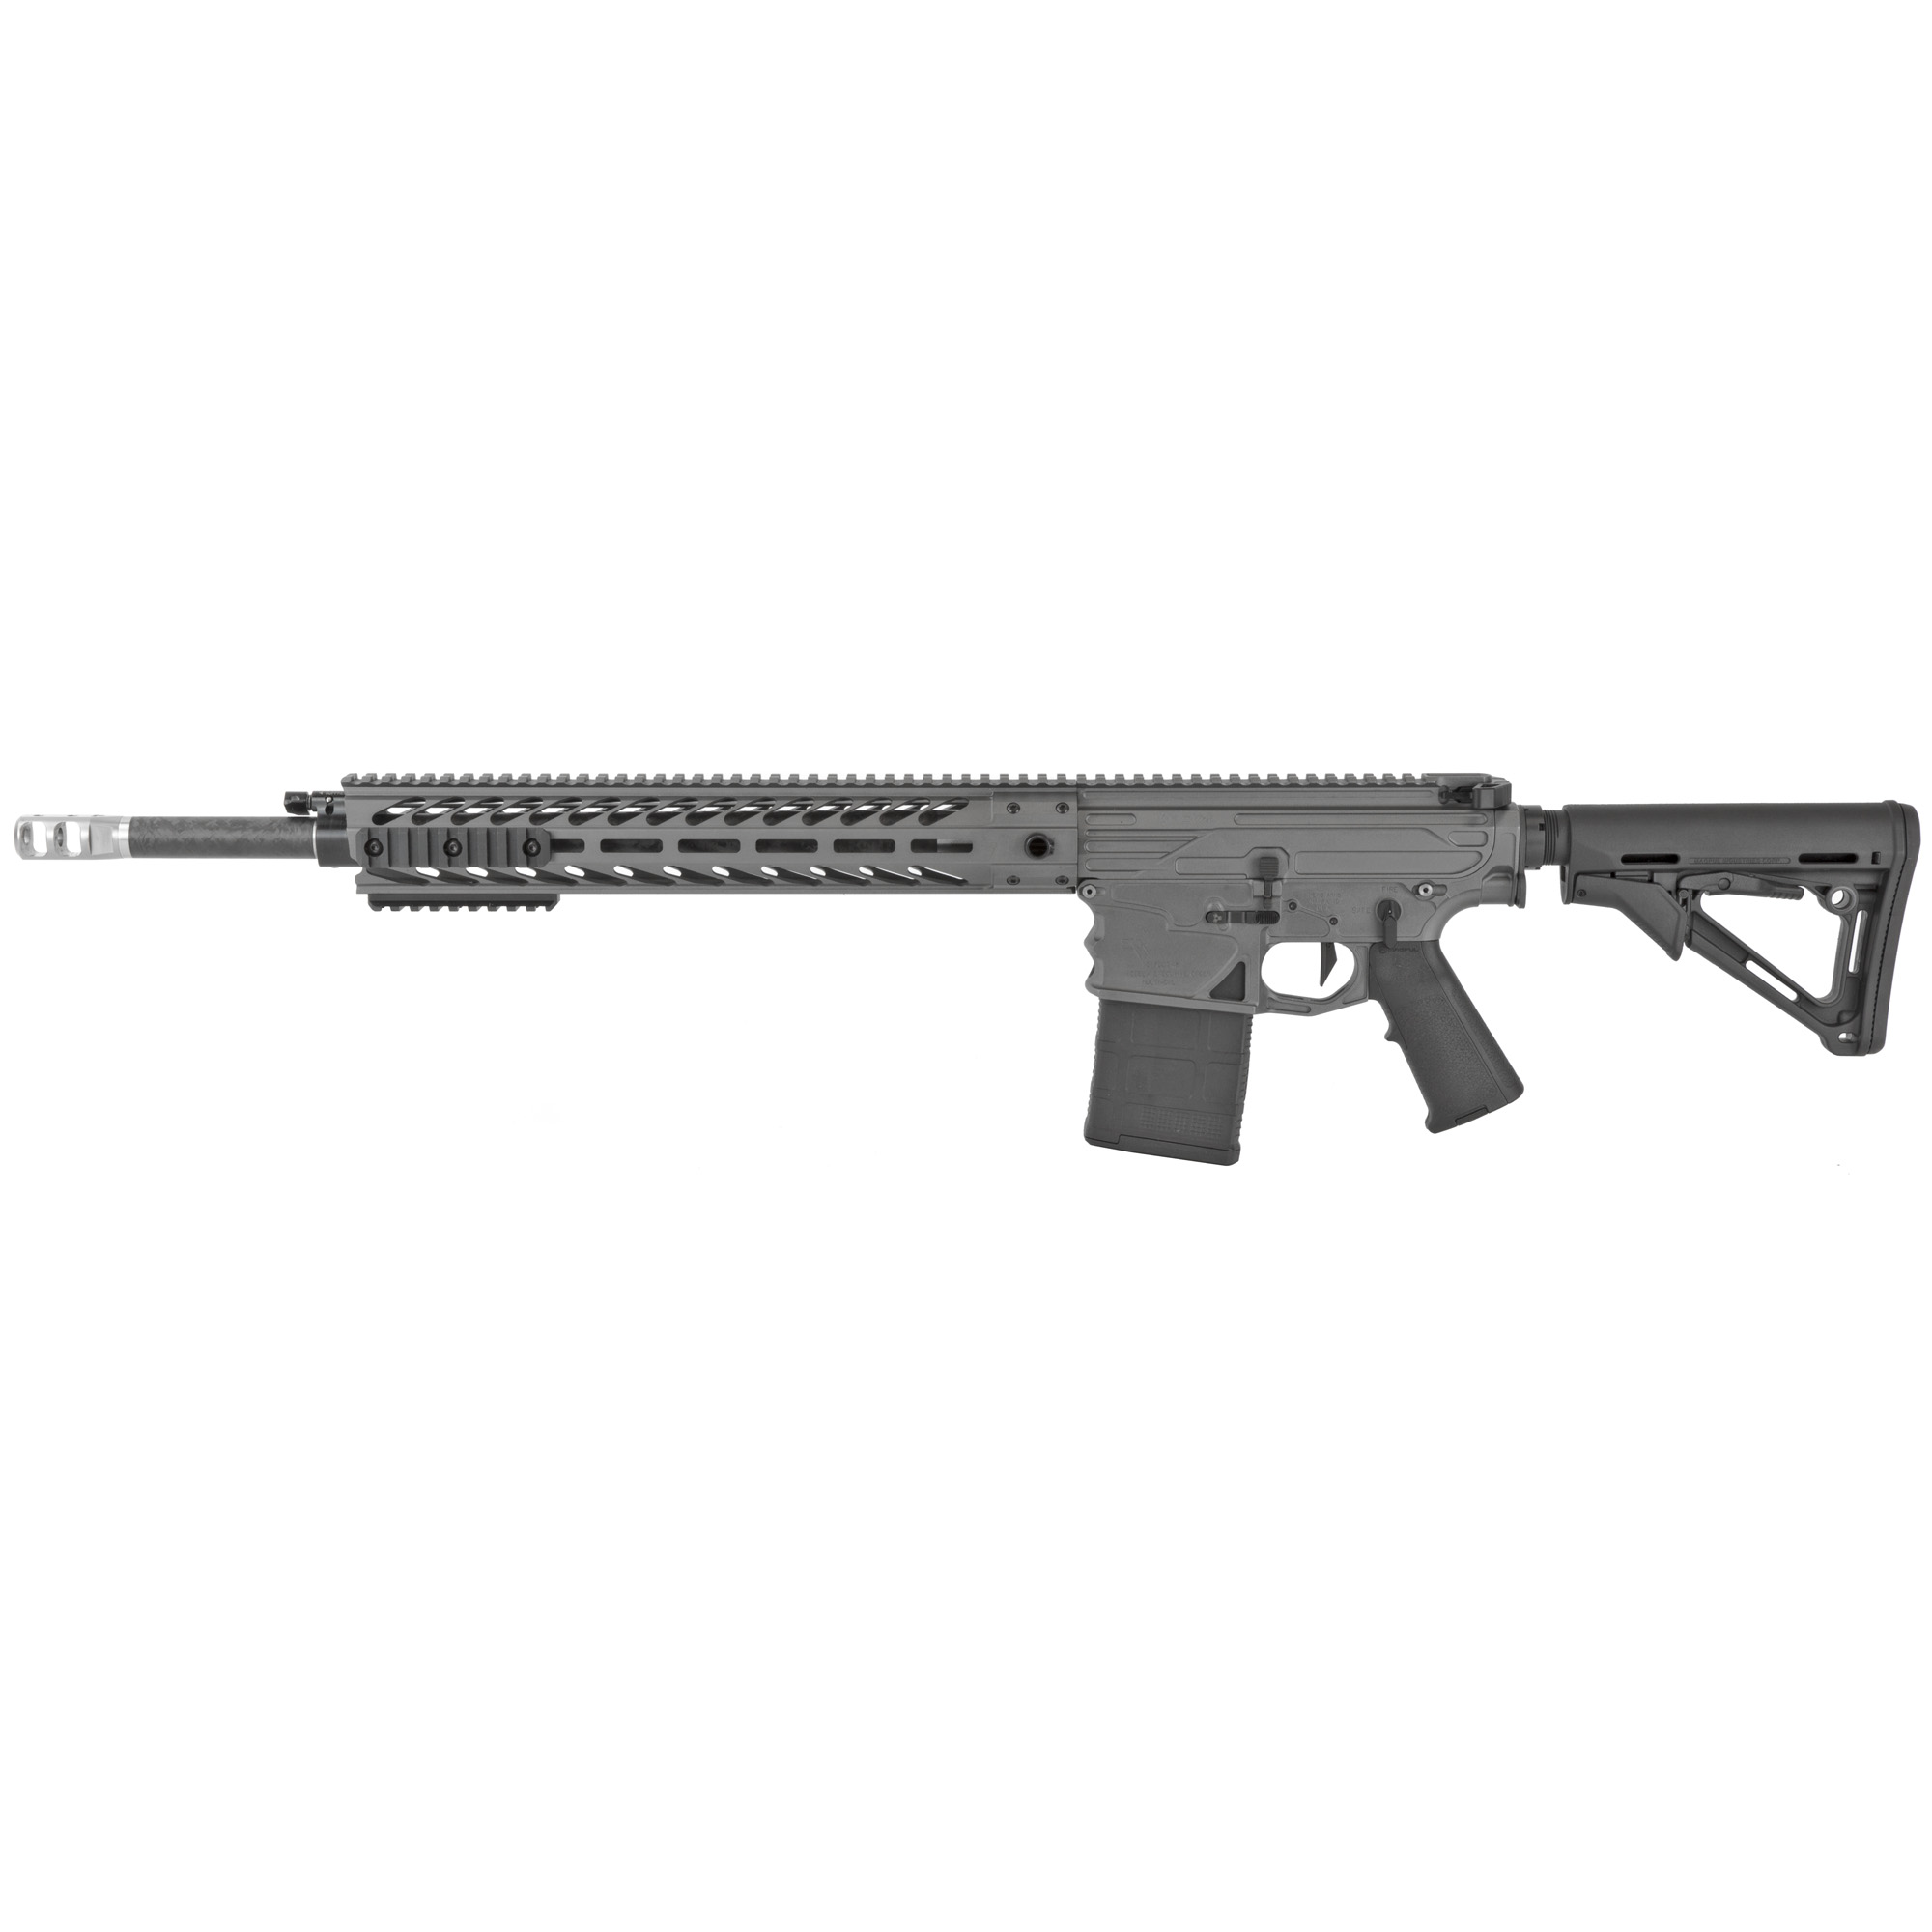 """The Executive Order (XO) is a lightweight"""" accurate"""" hard hitting carbine. Available only with a 20-inch Proof Research barrel"""" you can choose between .308"""" .260 Remington"""" and 6.5 Creedmoor chambering to fit your shooting needs. The longer barrel ensures that you can extract maximum velocity from your projectiles. Ambidextrous controls make operating the XO a cinch for any shooter."""